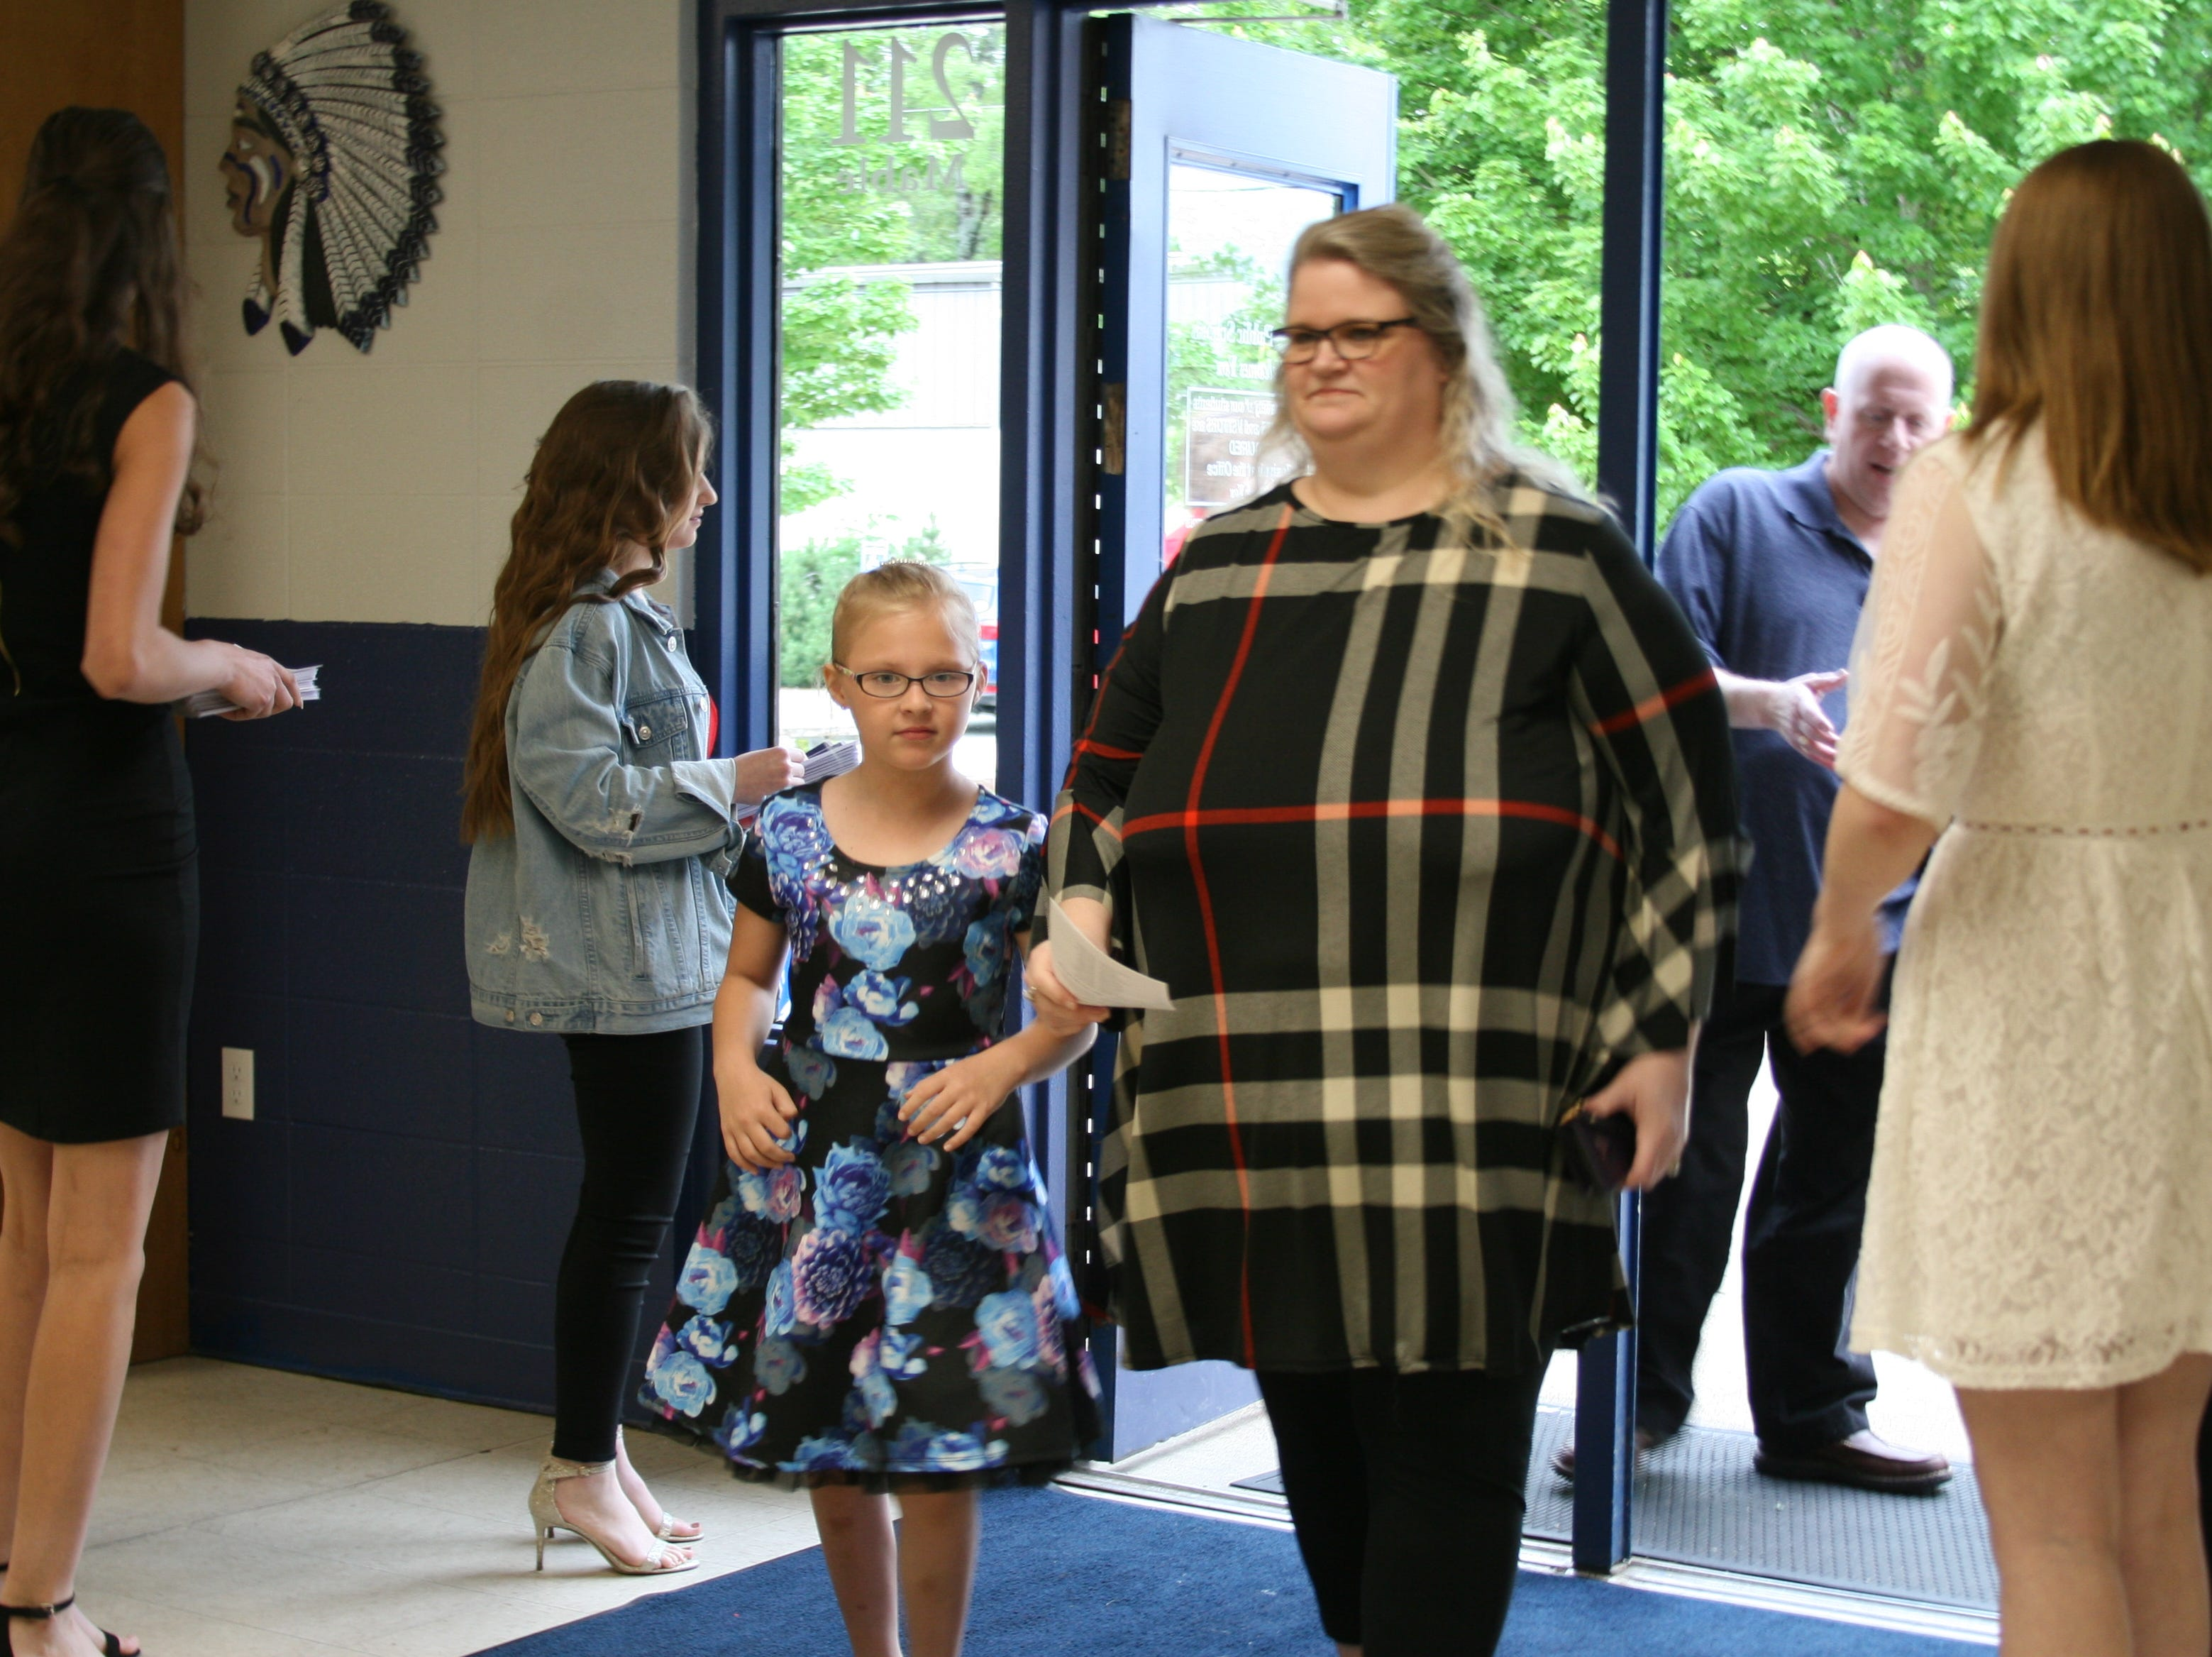 Hundreds of anxious parents, guests and members of the public streamed in Saturday night to Cotter High School's gymnasium for the Class of 2019's graduation ceremonies.